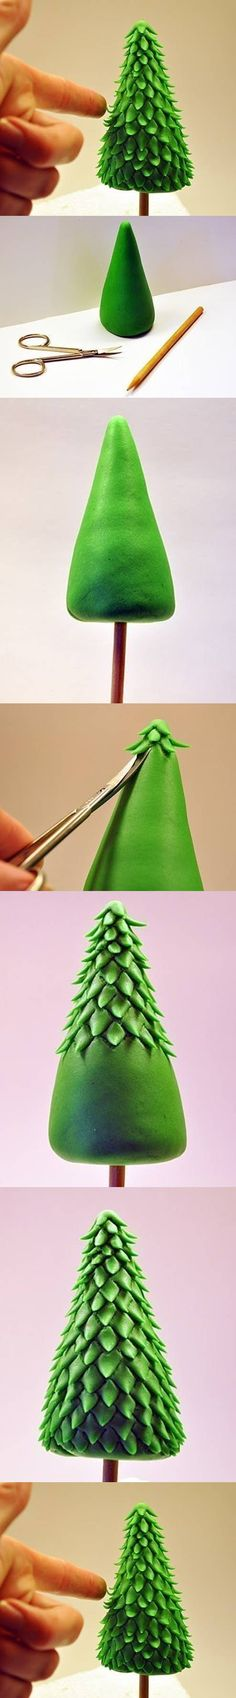 DIY Clay Christmas Tree Internet Tutorial DIY Clay Christmas Tree Internet Tutorial